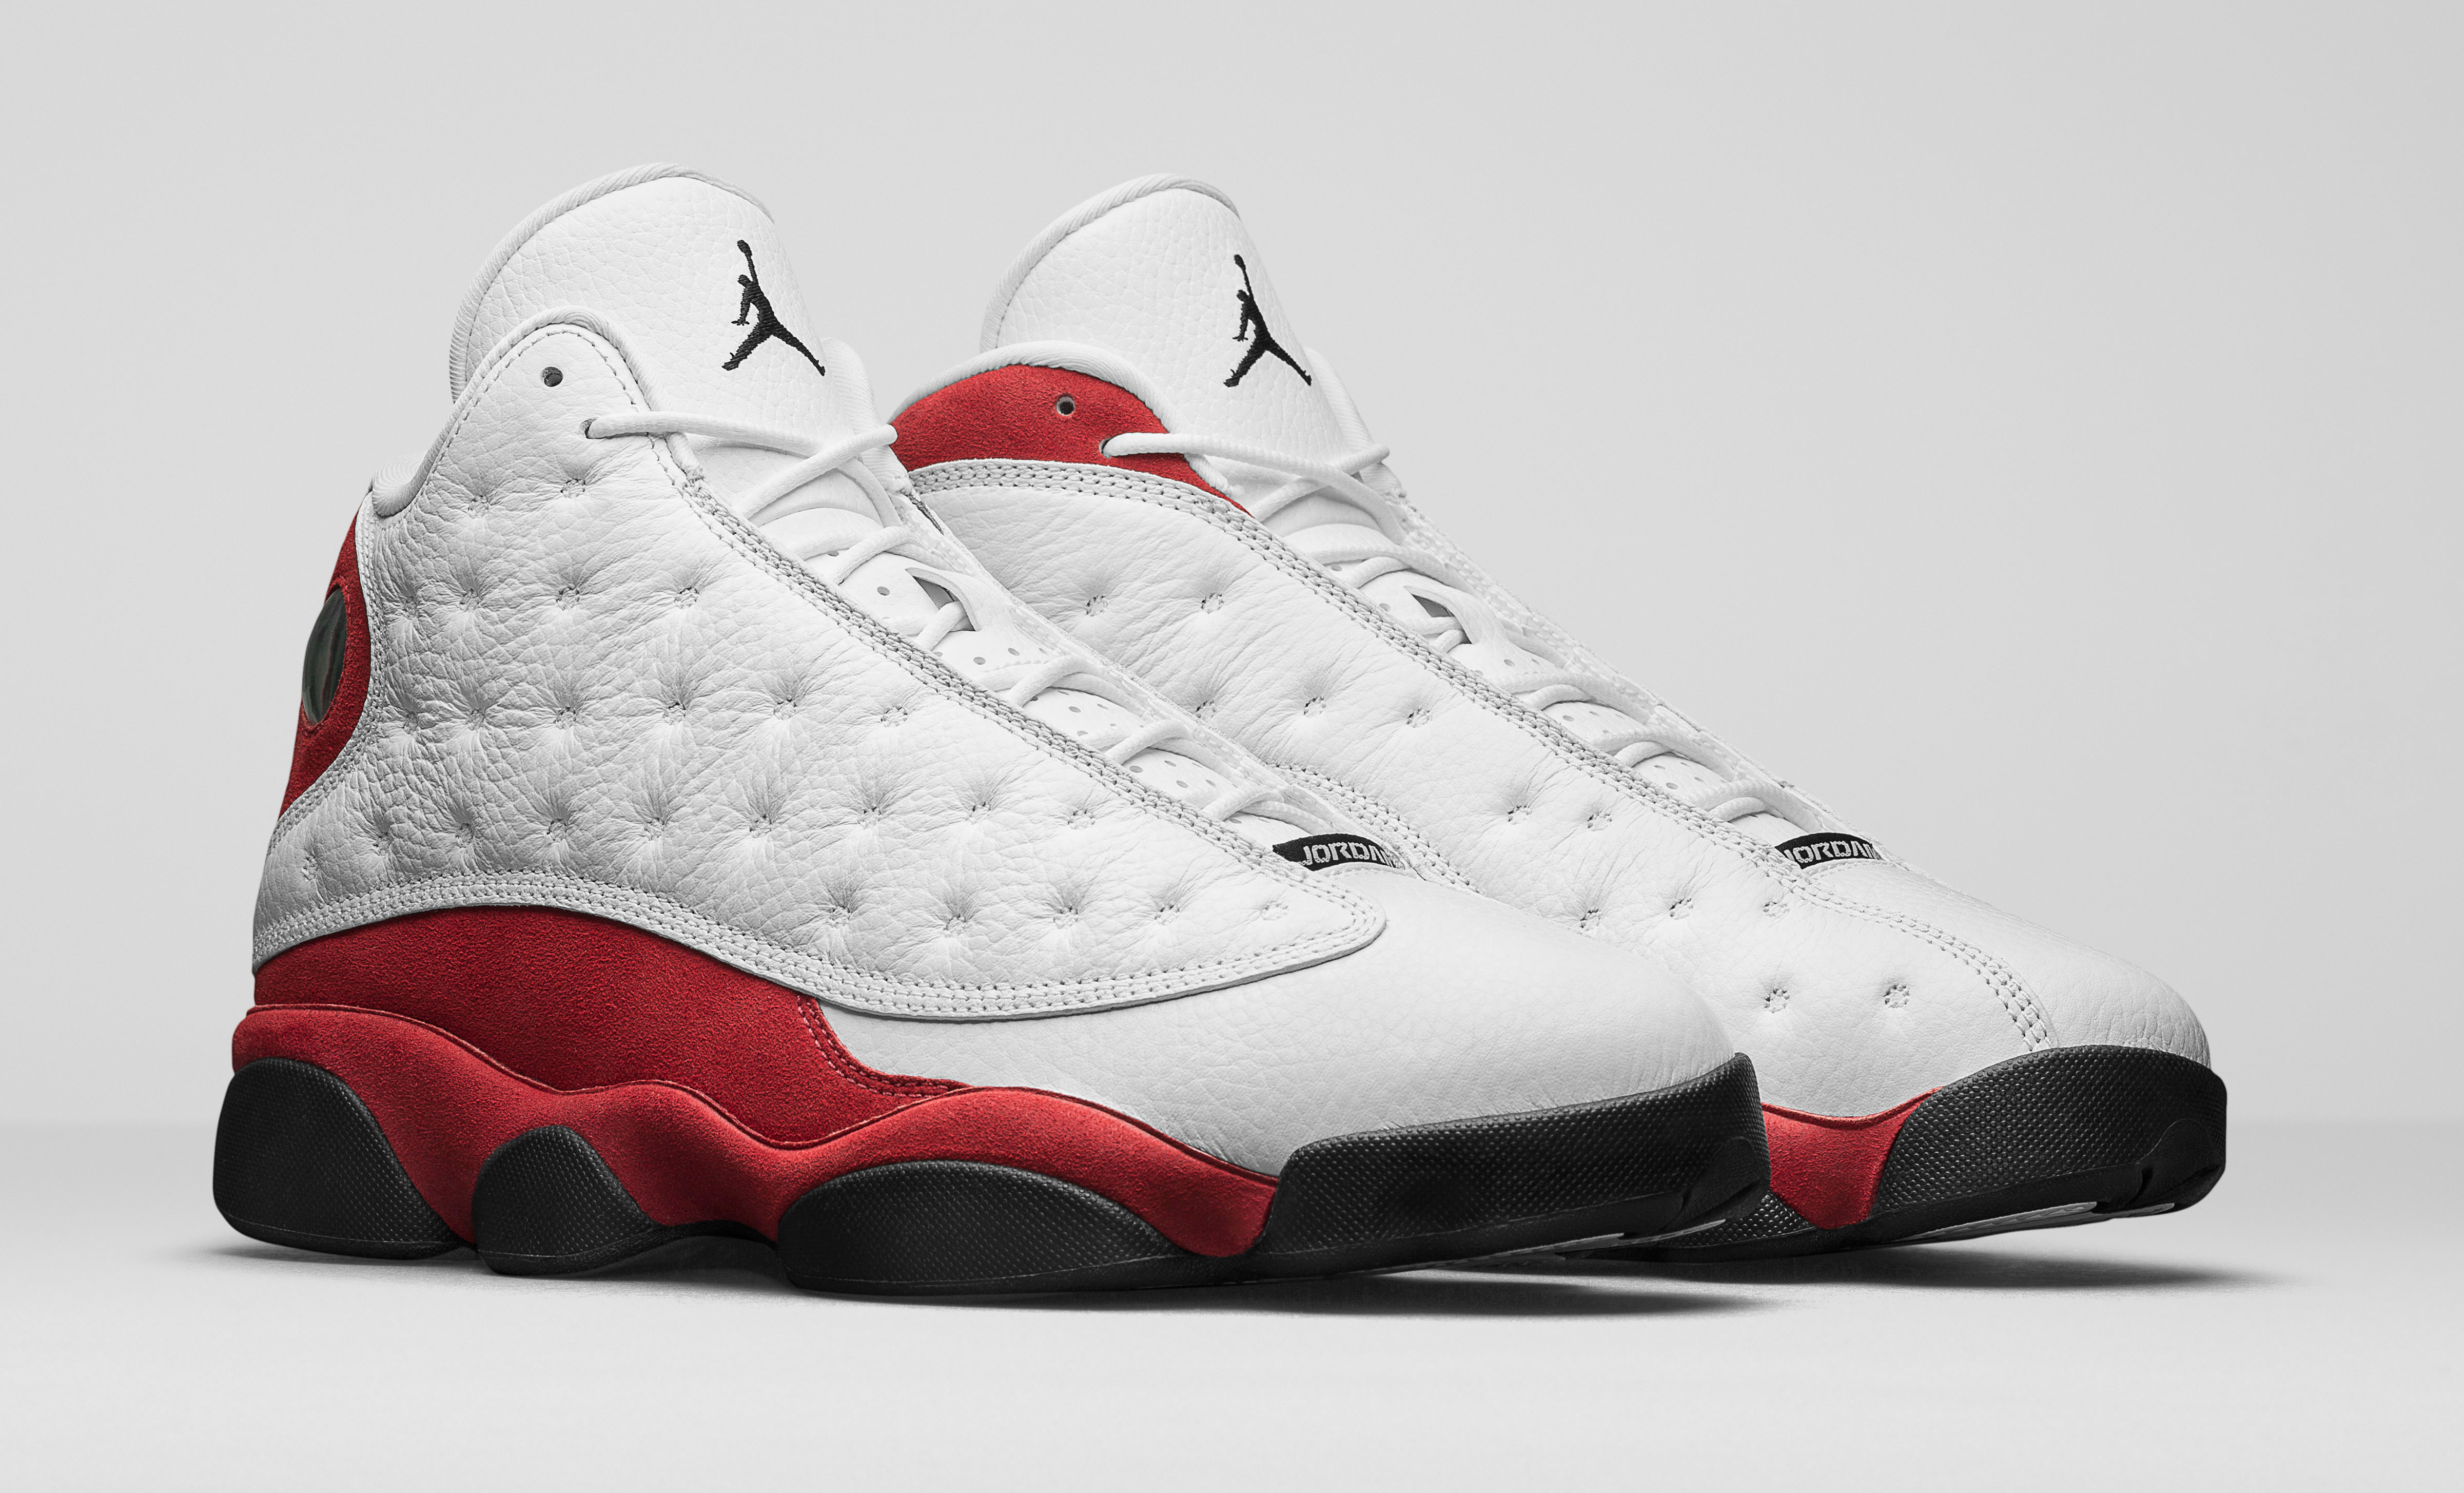 508579958ae Air Jordan 13 White Red Air Jordan 6 All Star Early | Sole Collector